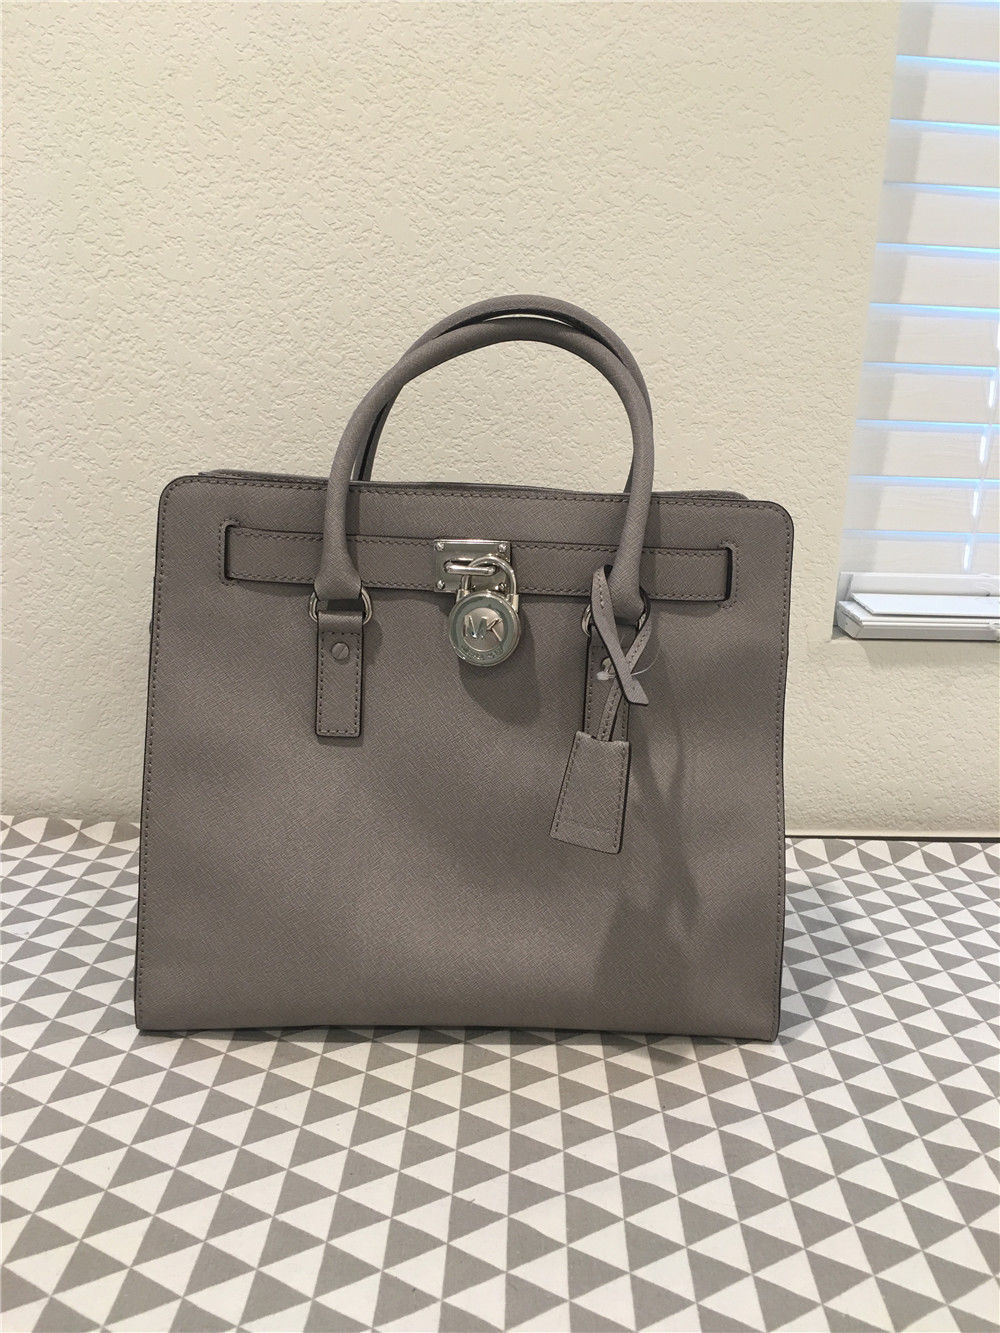 1e5bc6ec5dc9aa Michael Kors Large Dillon Saffiano Leather and 50 similar items. 57